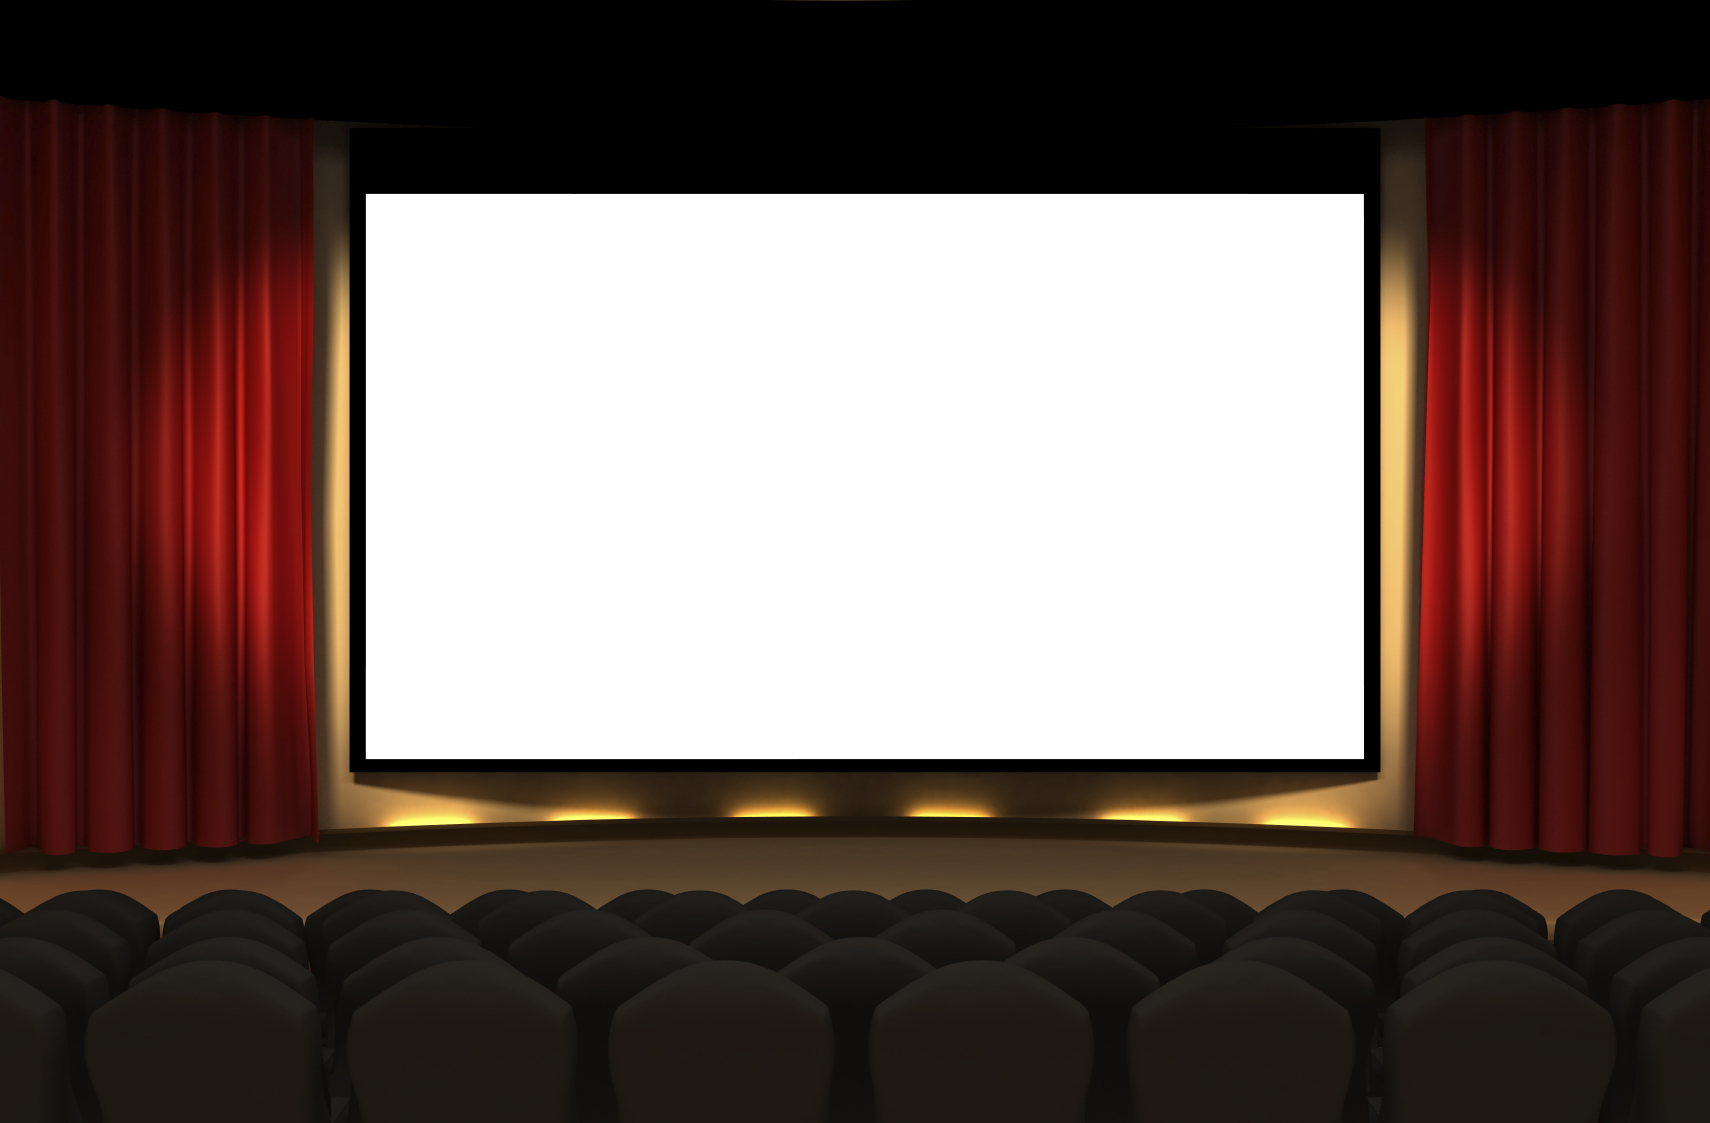 movie screen wallpaper wallpapersafari stage clip art image stage clipart black and white